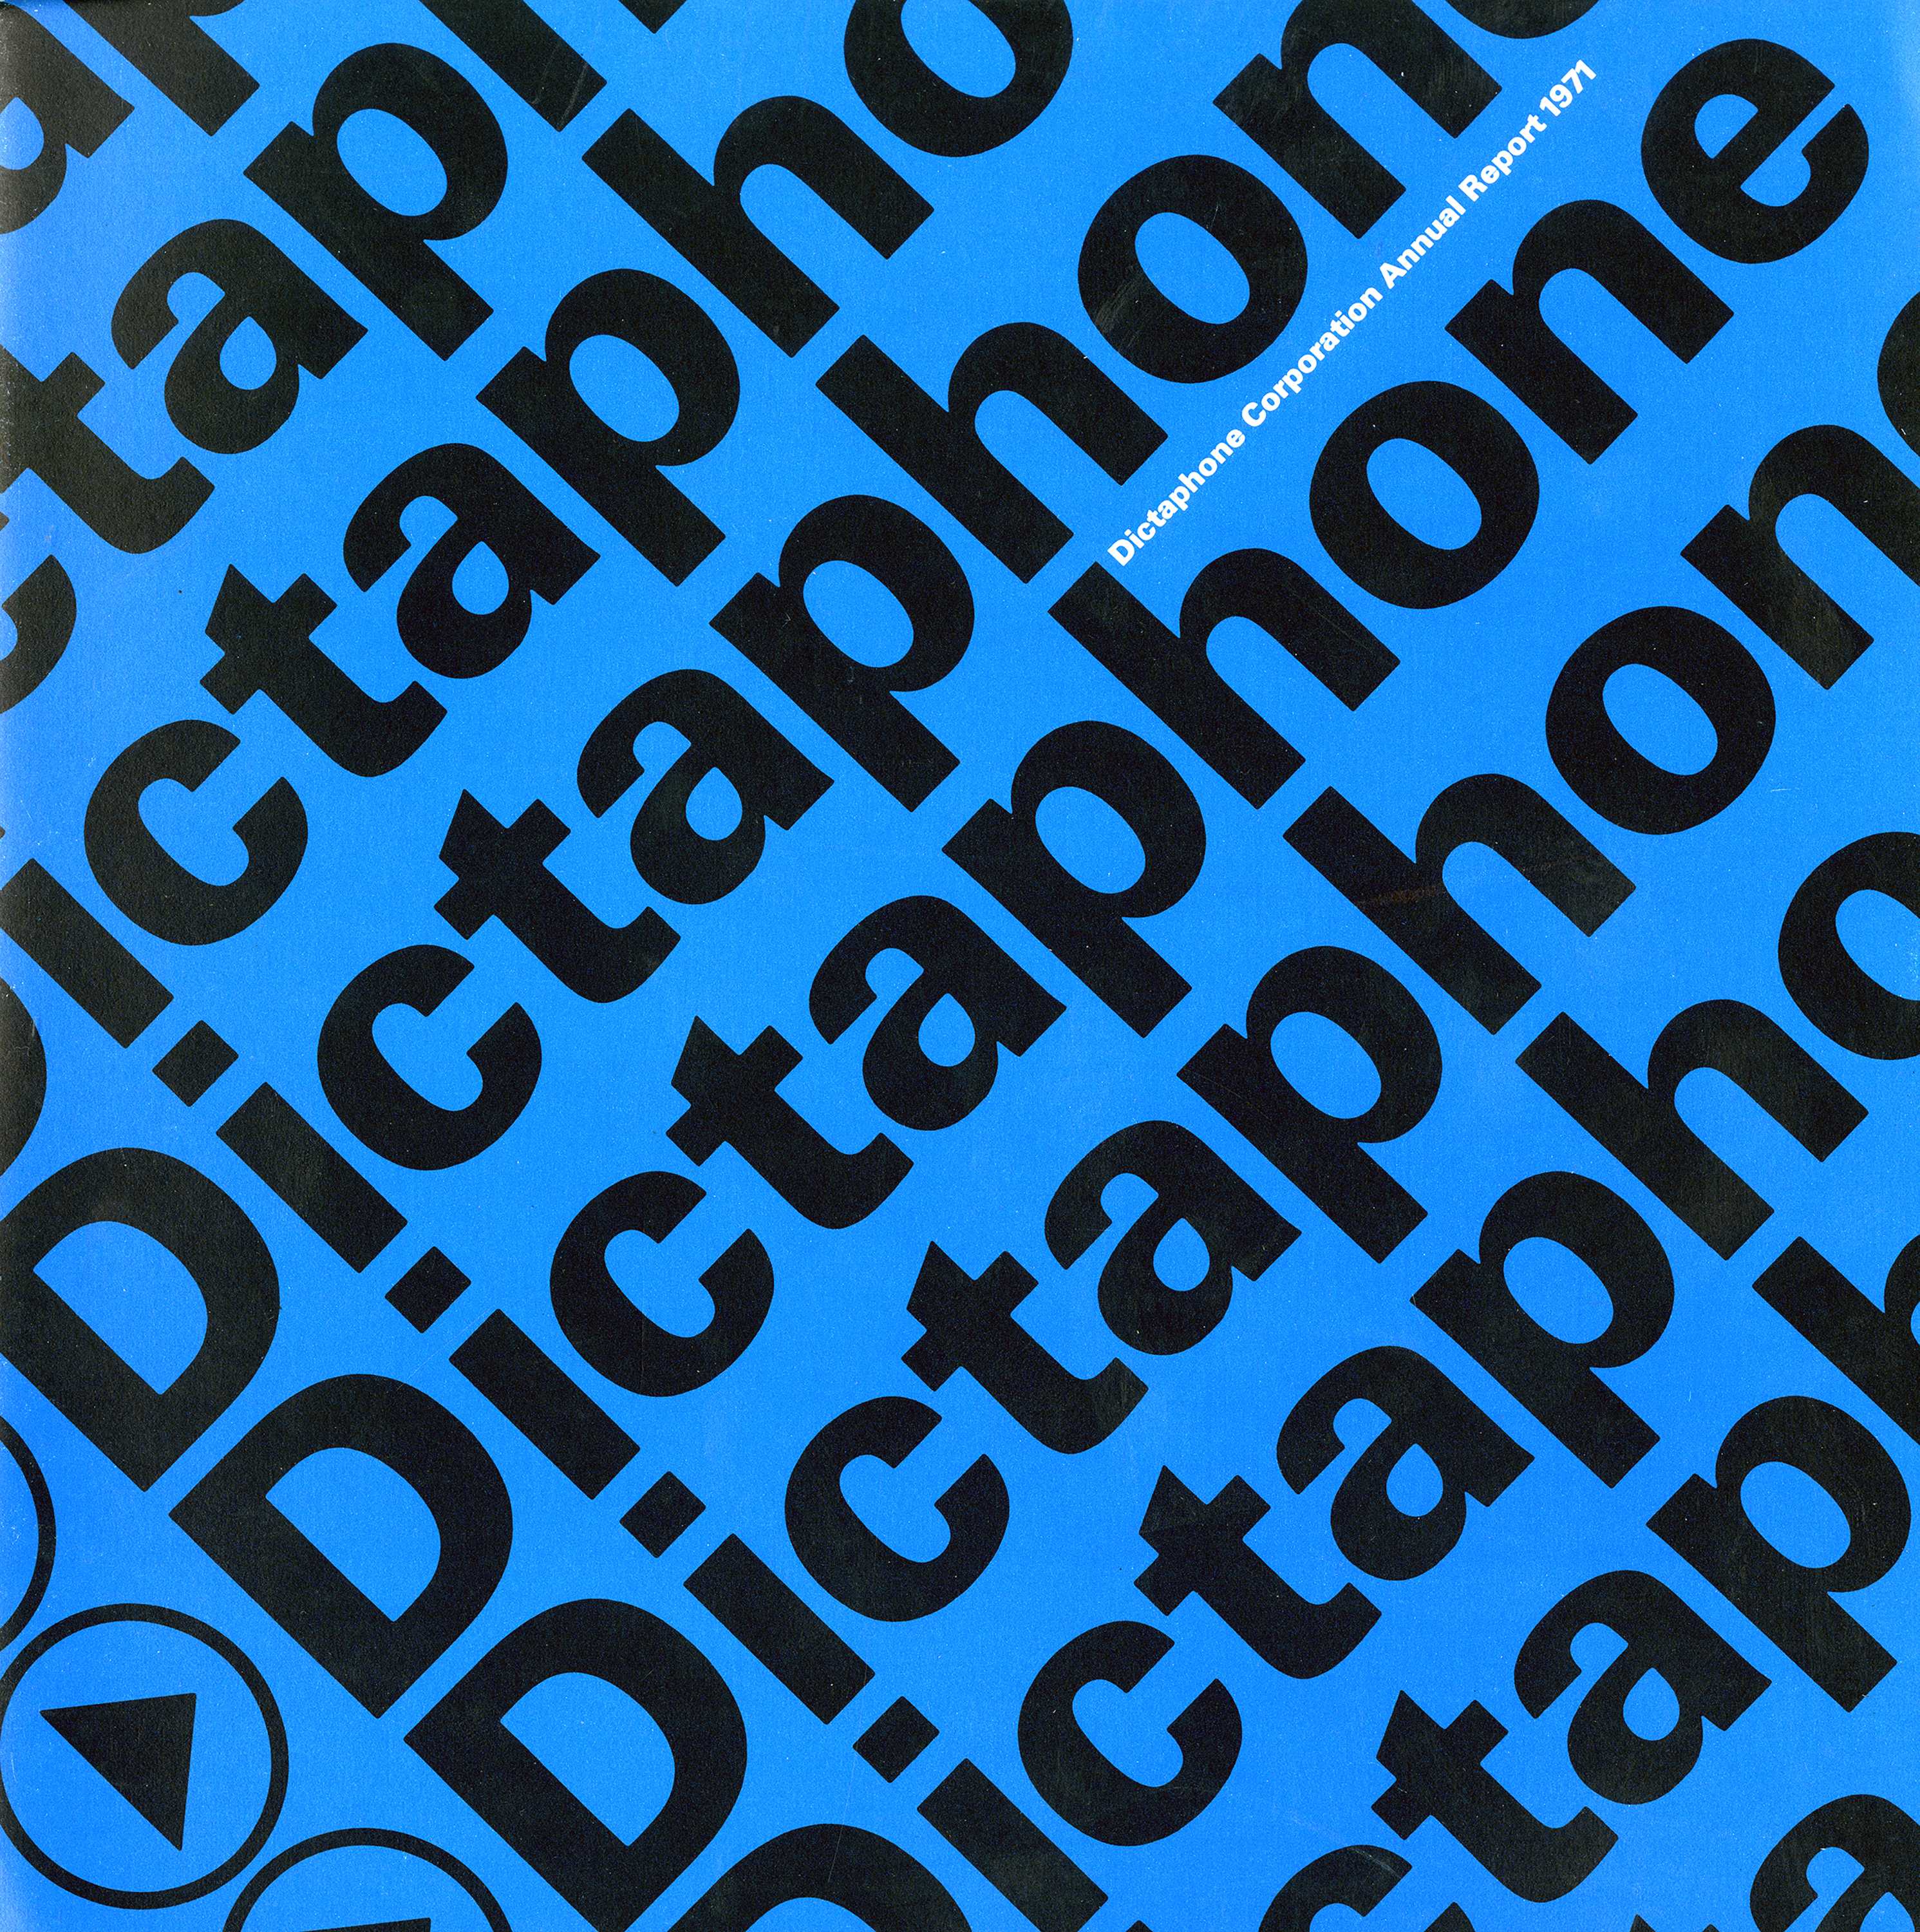 "The word ""Dictaphone"" is repeated infinitely next to a play button graphic. Black against blue background."